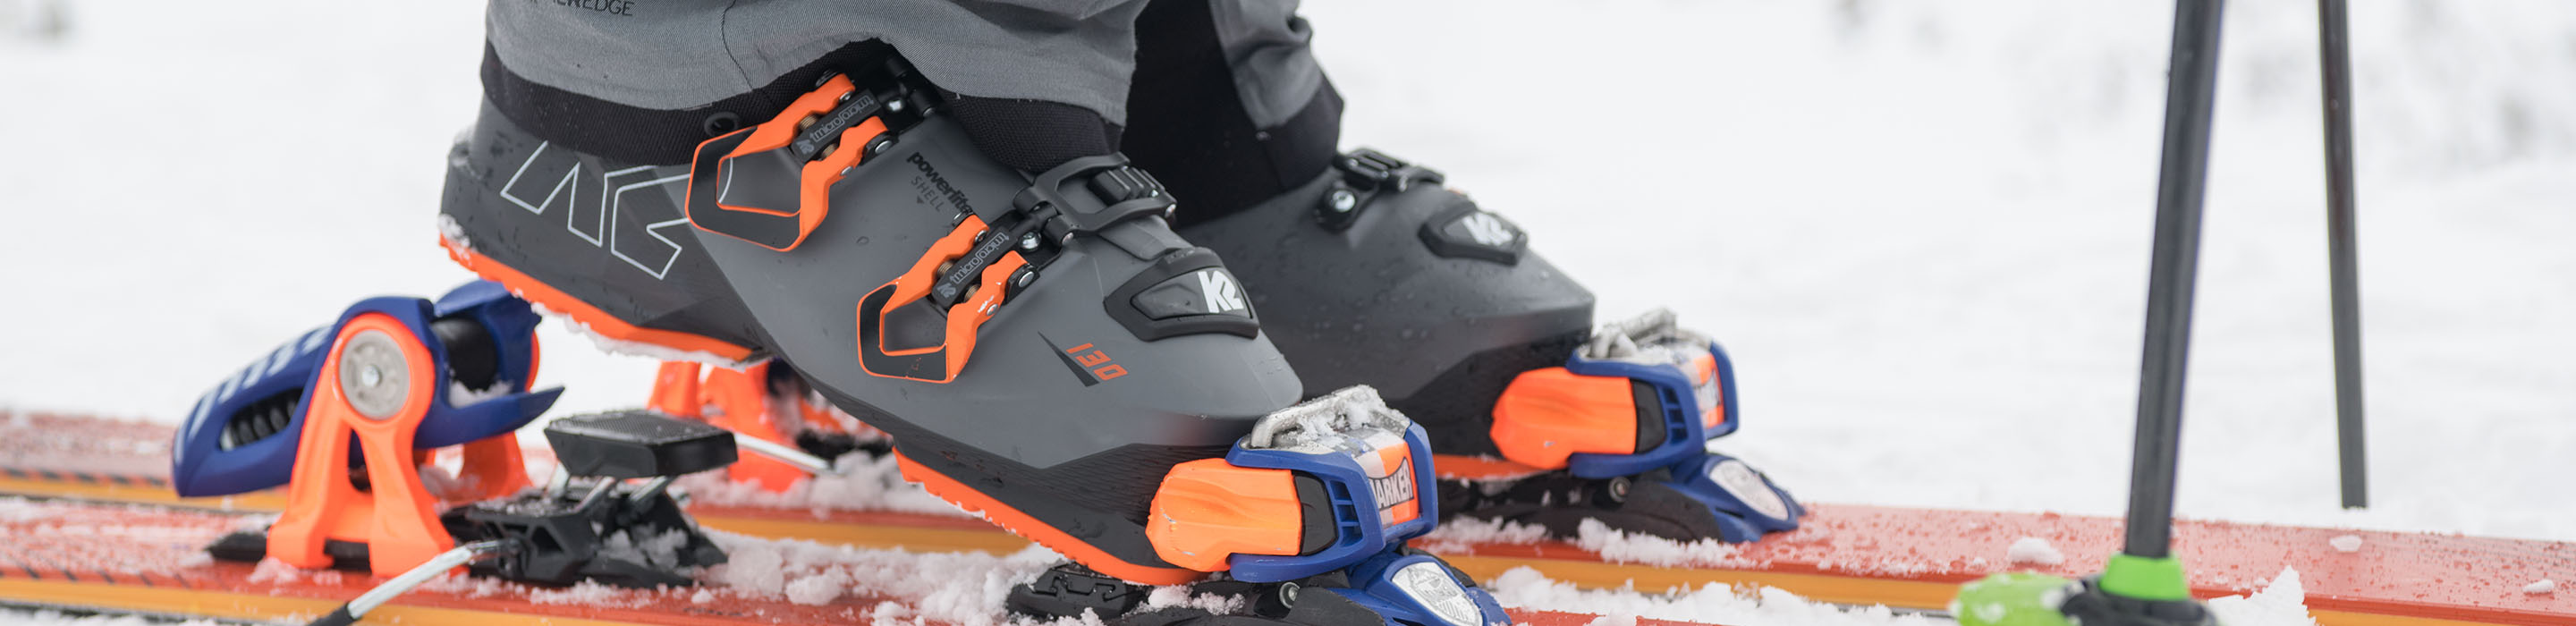 K2-recon-men-ski-boot-k2eshop-jaglarz-opava